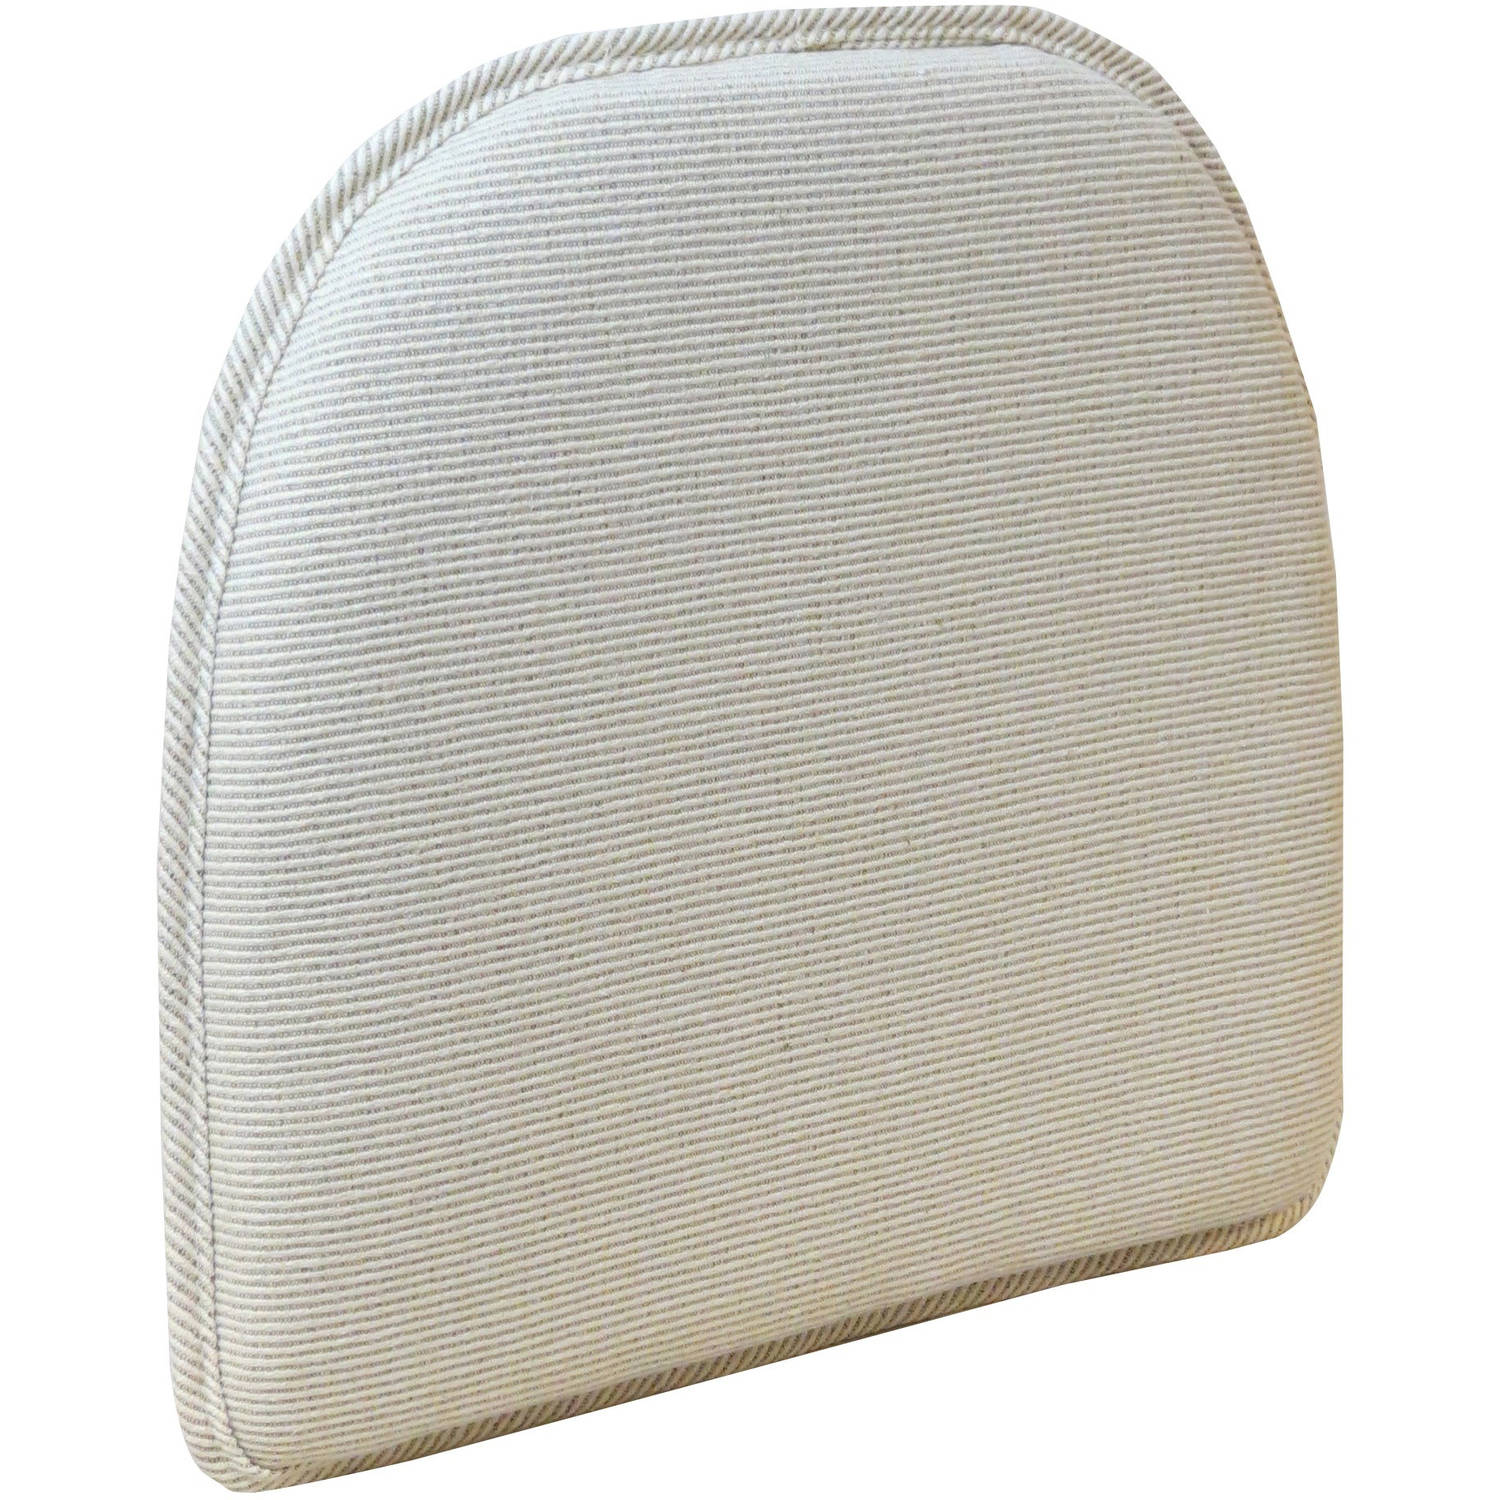 "Gripper Non Slip 15"" x 16"" Venus Chair Cushion"